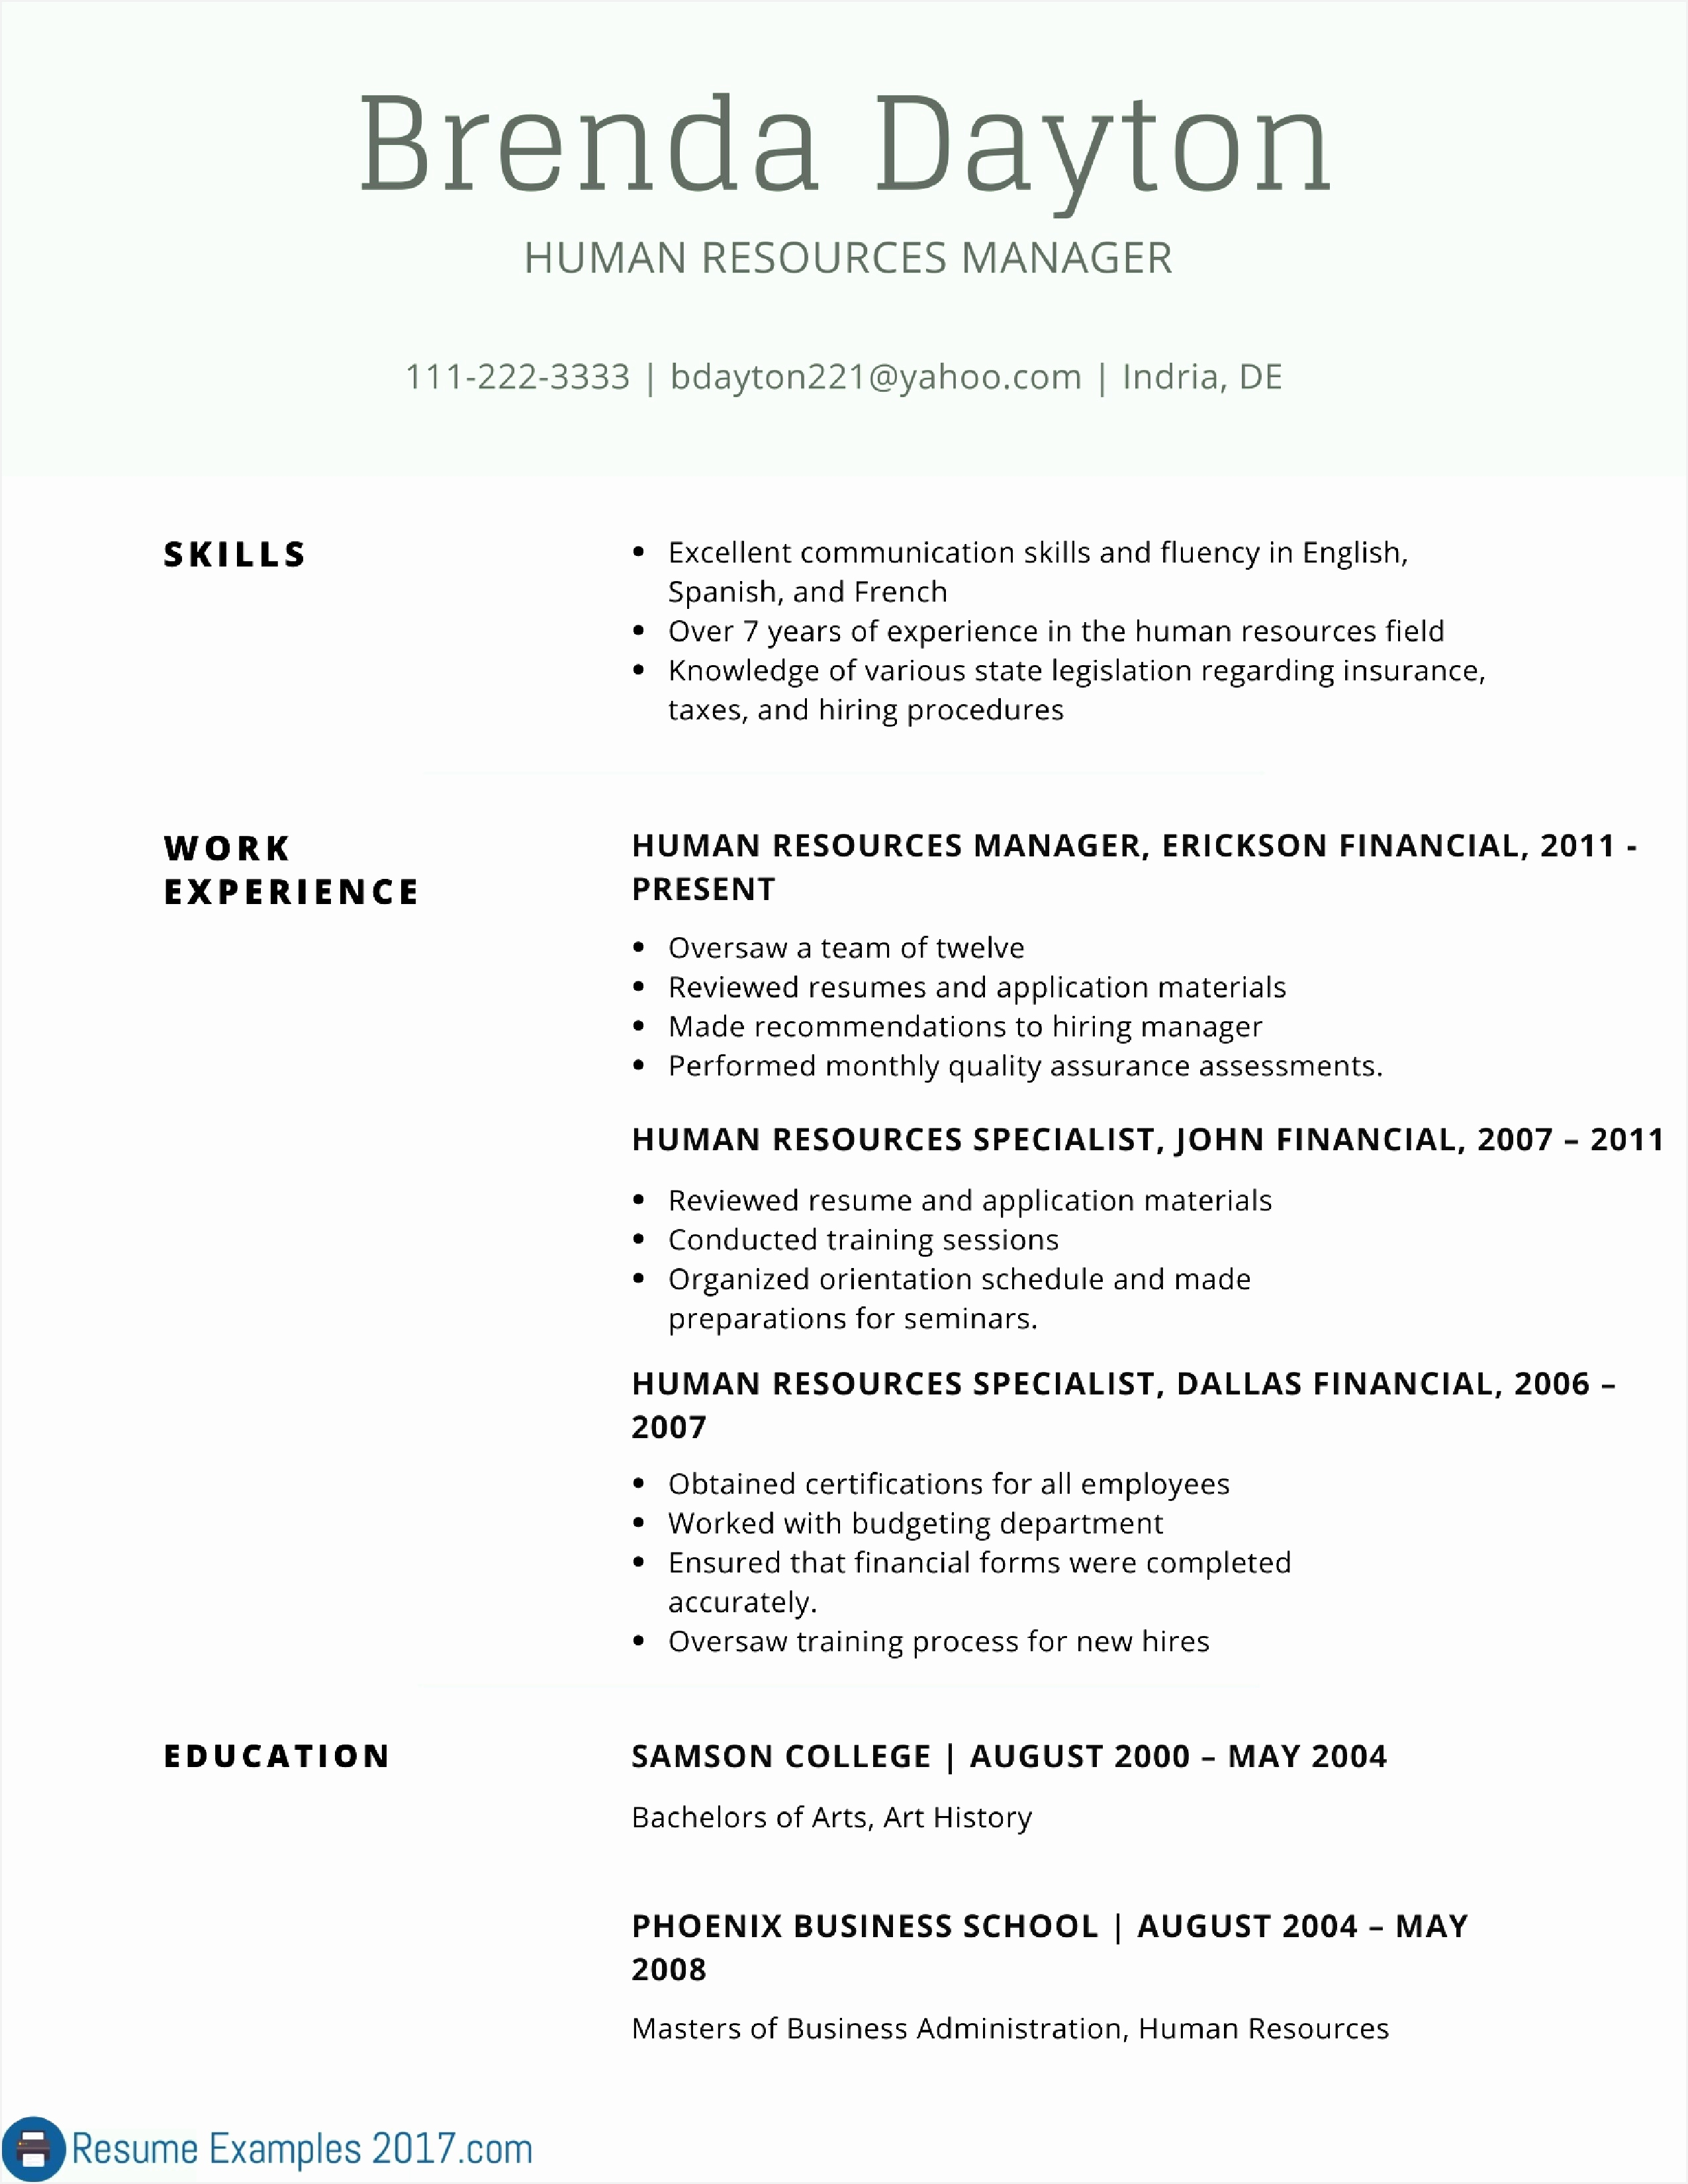 How to Resume Unique Fresh New Resume Sample Best Resume Cover Luxury formatted Resume 0d33002550